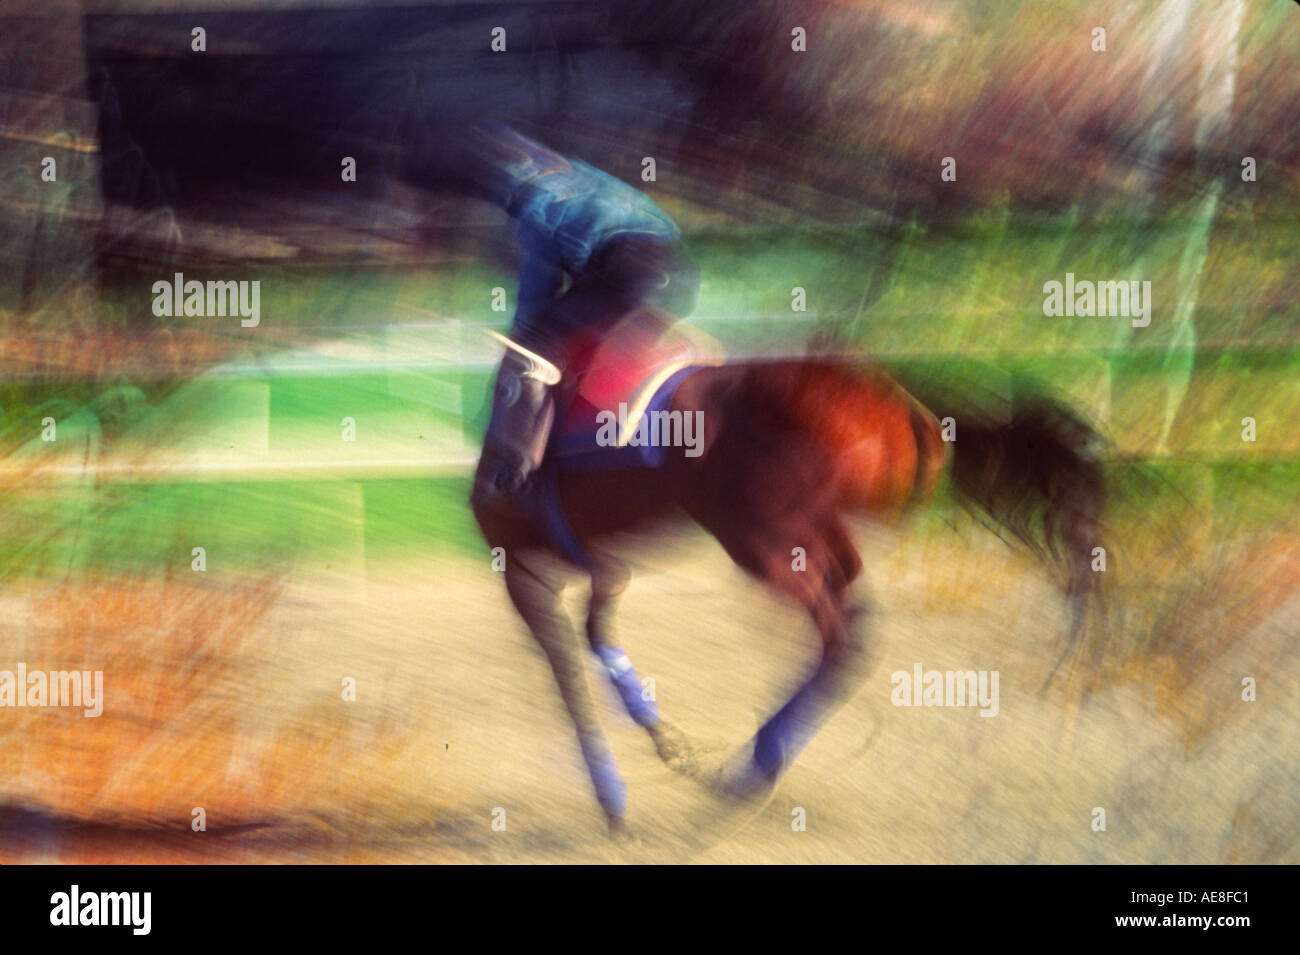 Blurred Motion Image Of A Jockey Riding Galloping Horse At The Race Track